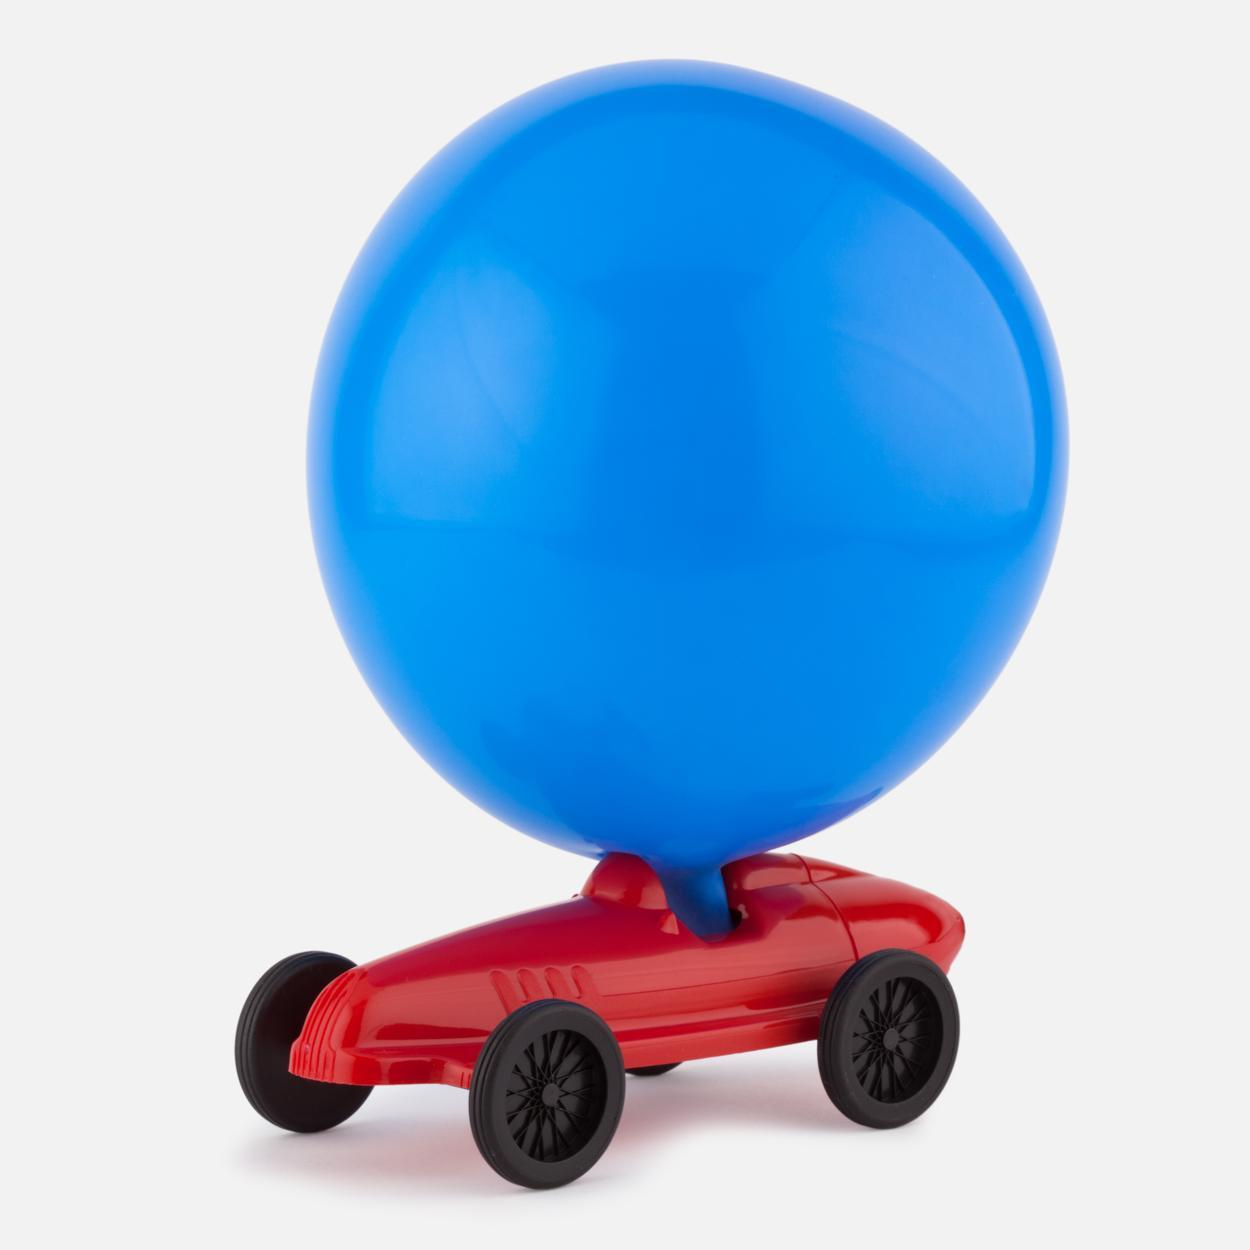 Car balloon